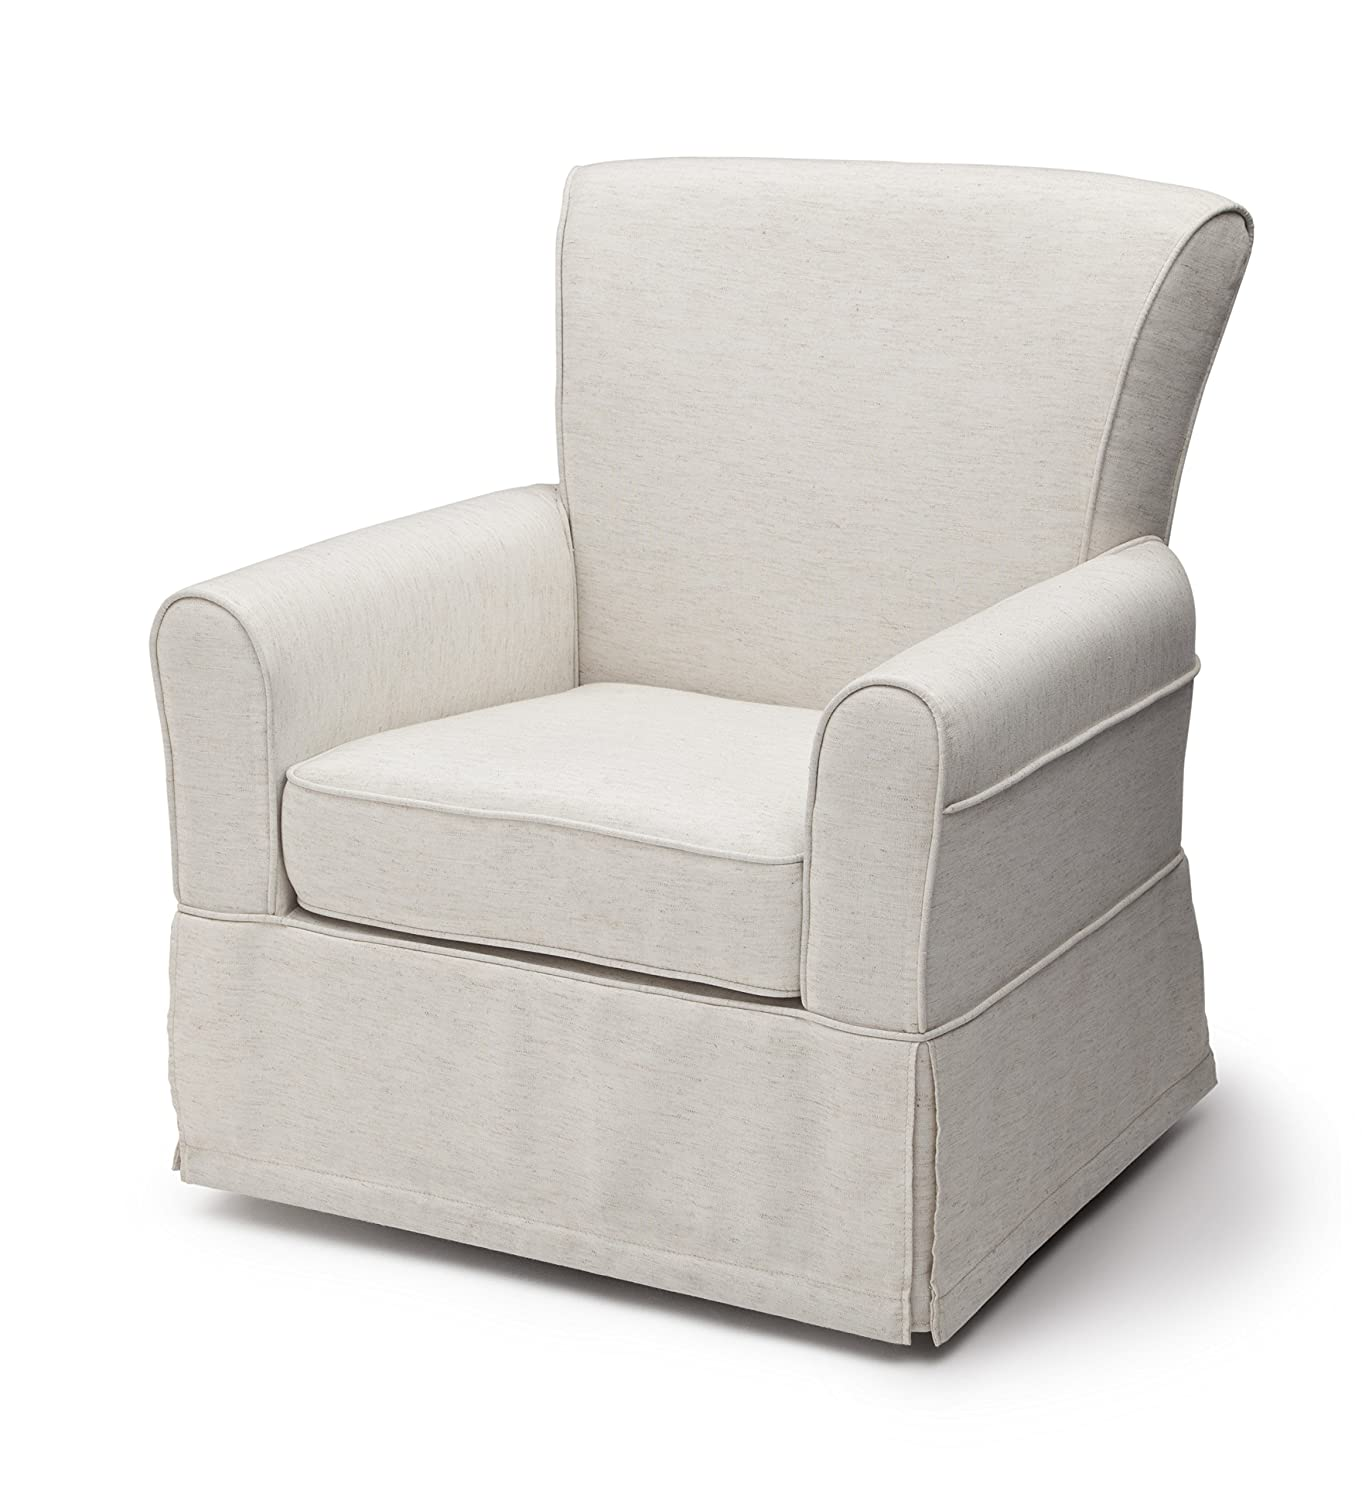 delta furniture upholstered glider swivel rocker chair sand - Gliding Rocking Chair